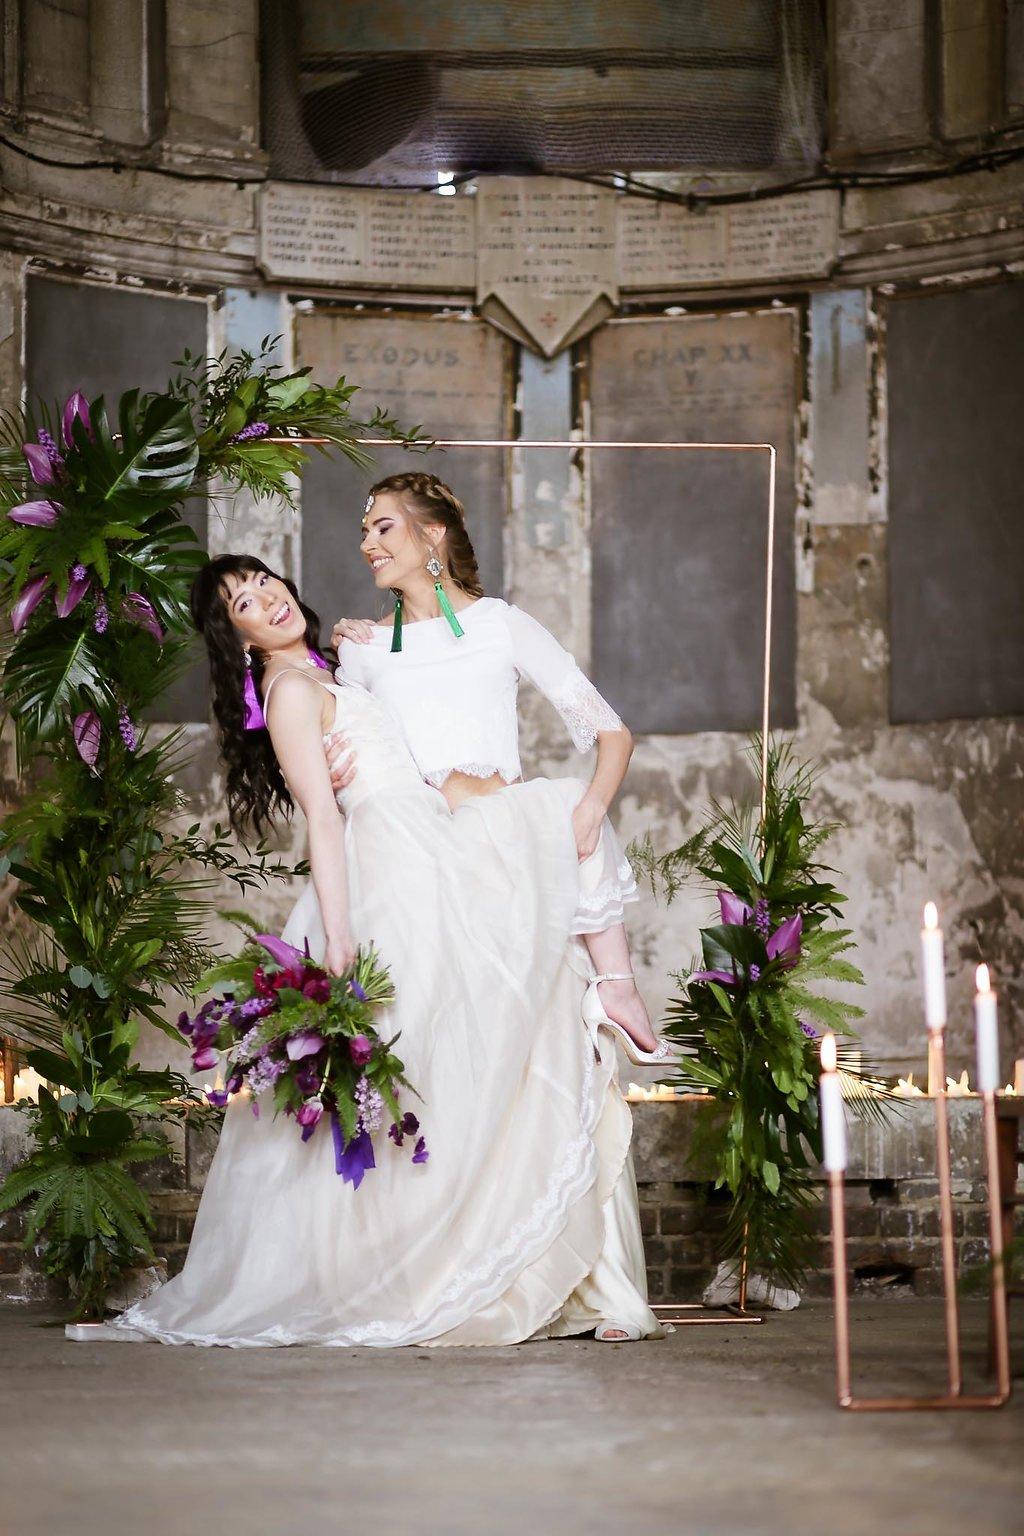 Rock the Purple Love - Gido Weddings - The Asylum Chapel - alternative wedding inspiration 107 - urban, modern wedding